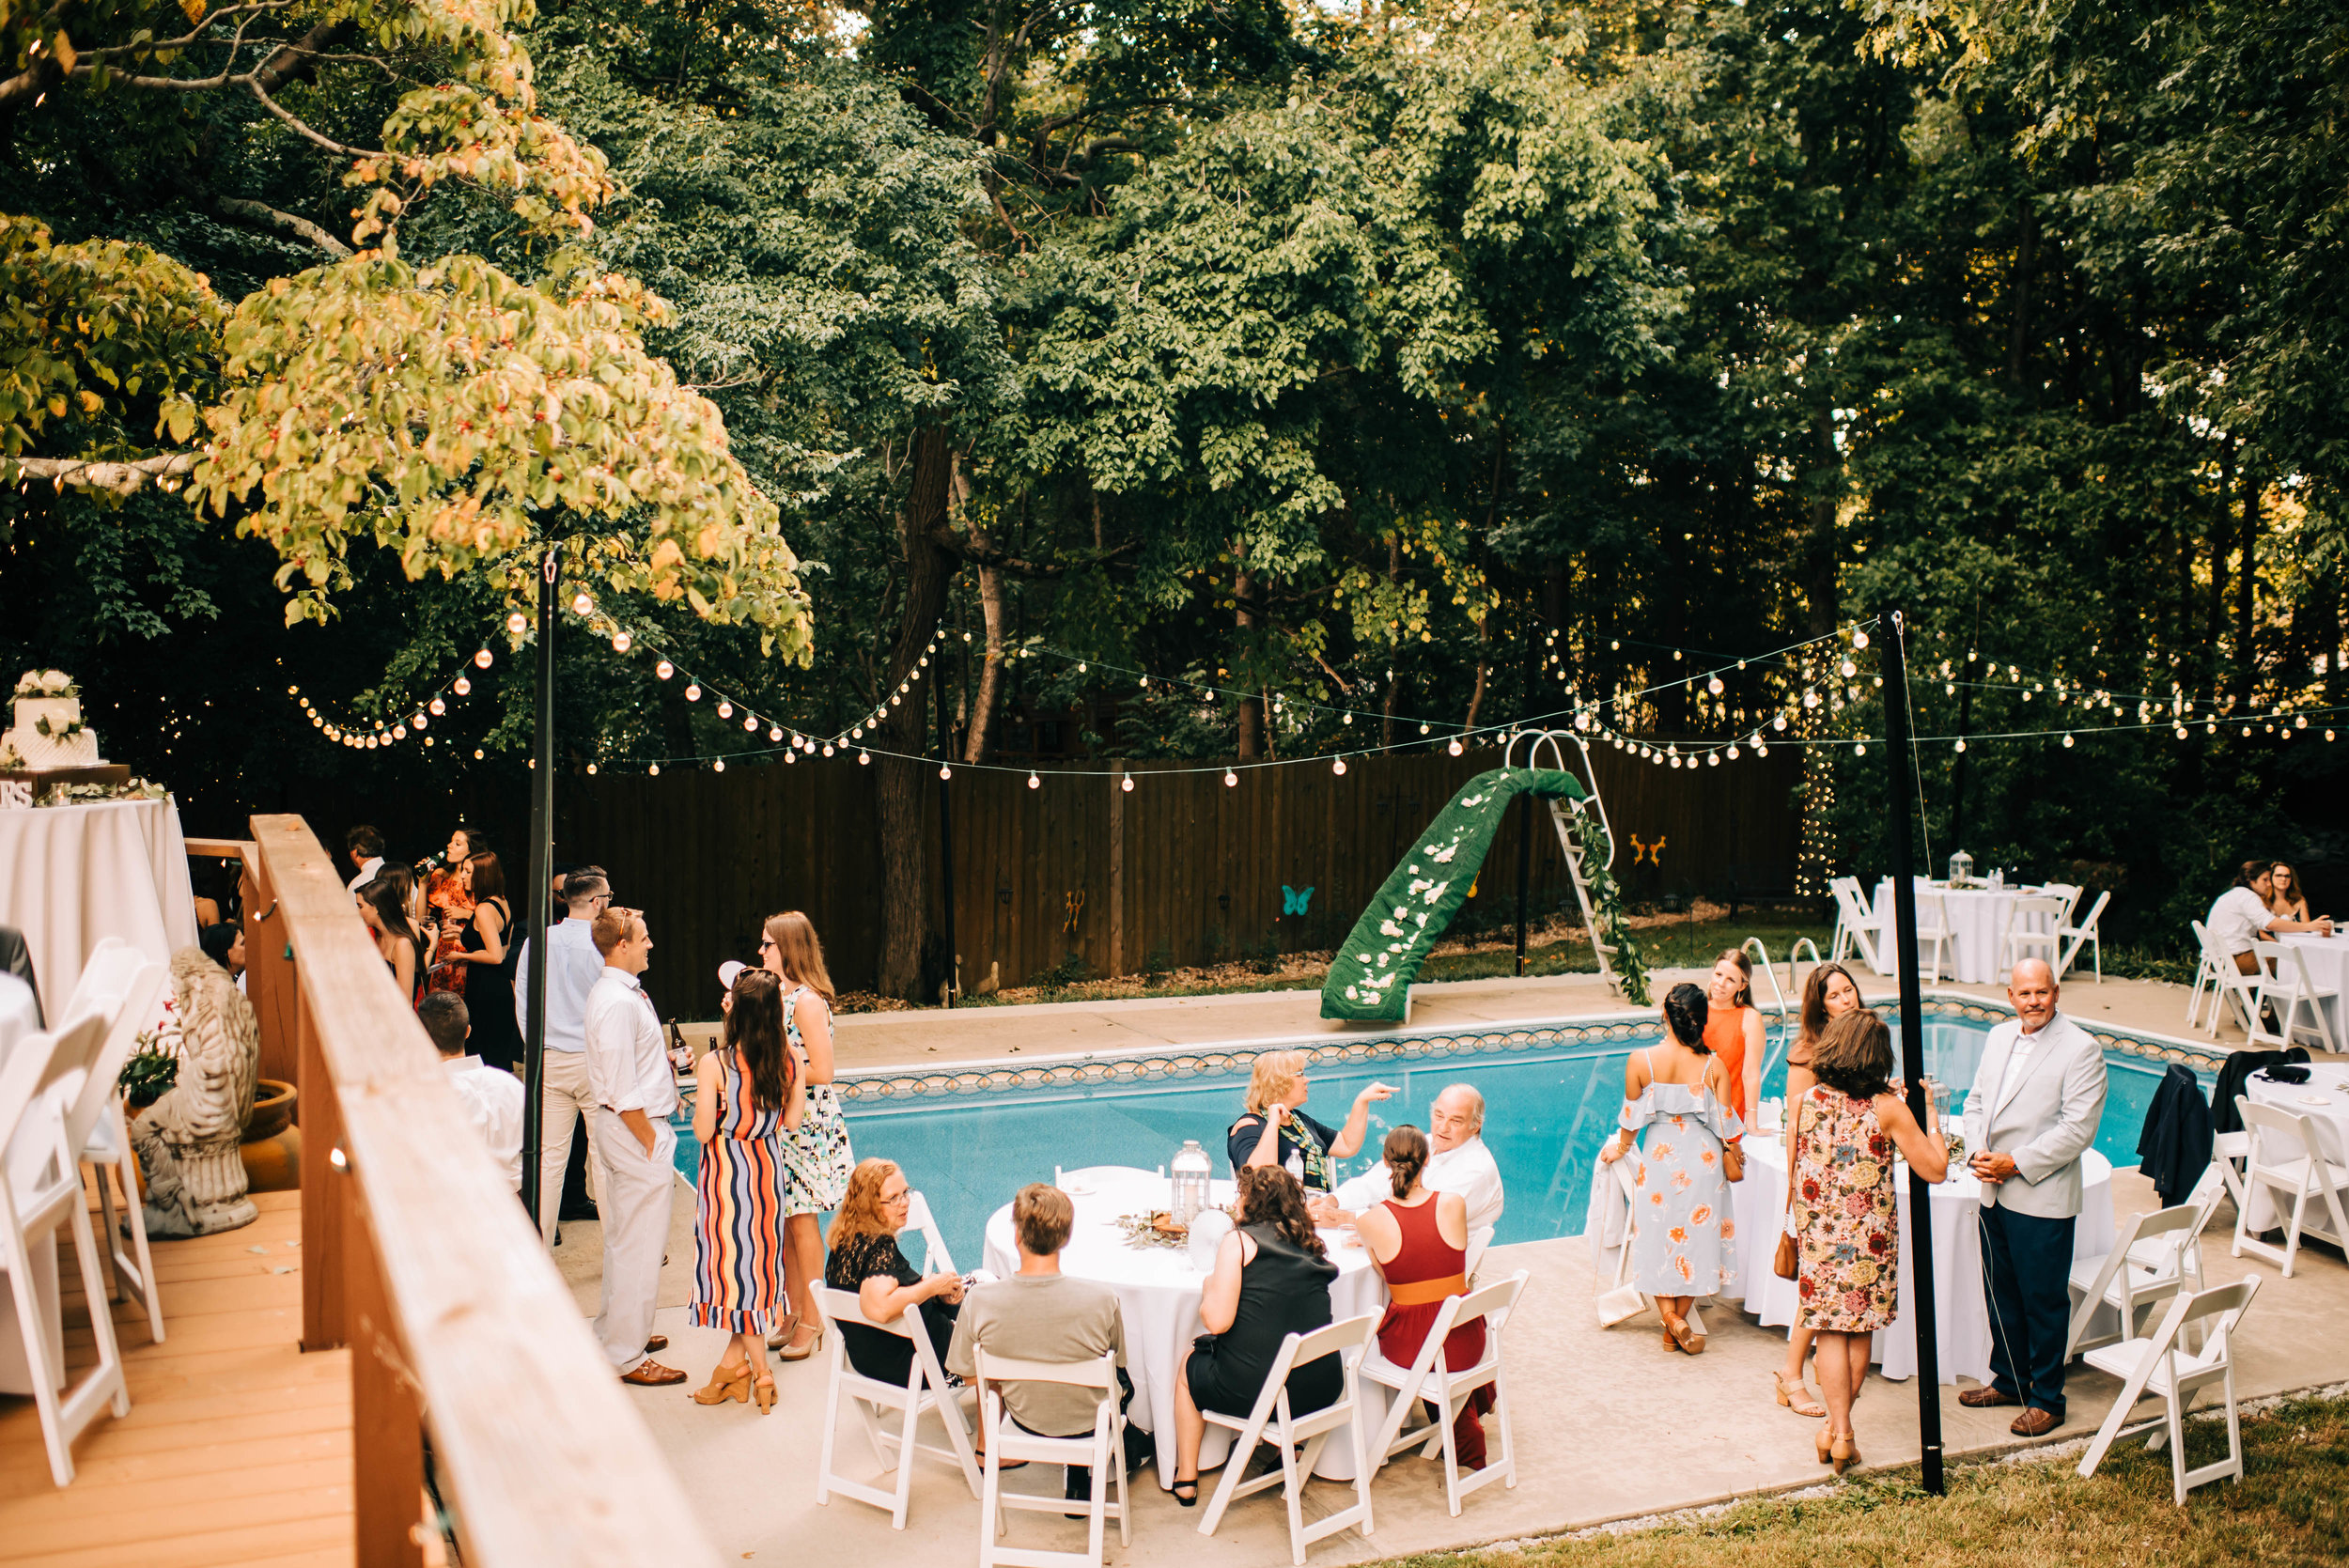 atlanta backyard wedding bay area oakland san francisco engagement wedding nontraditional fun creative eclectic photographer magic-902.jpg